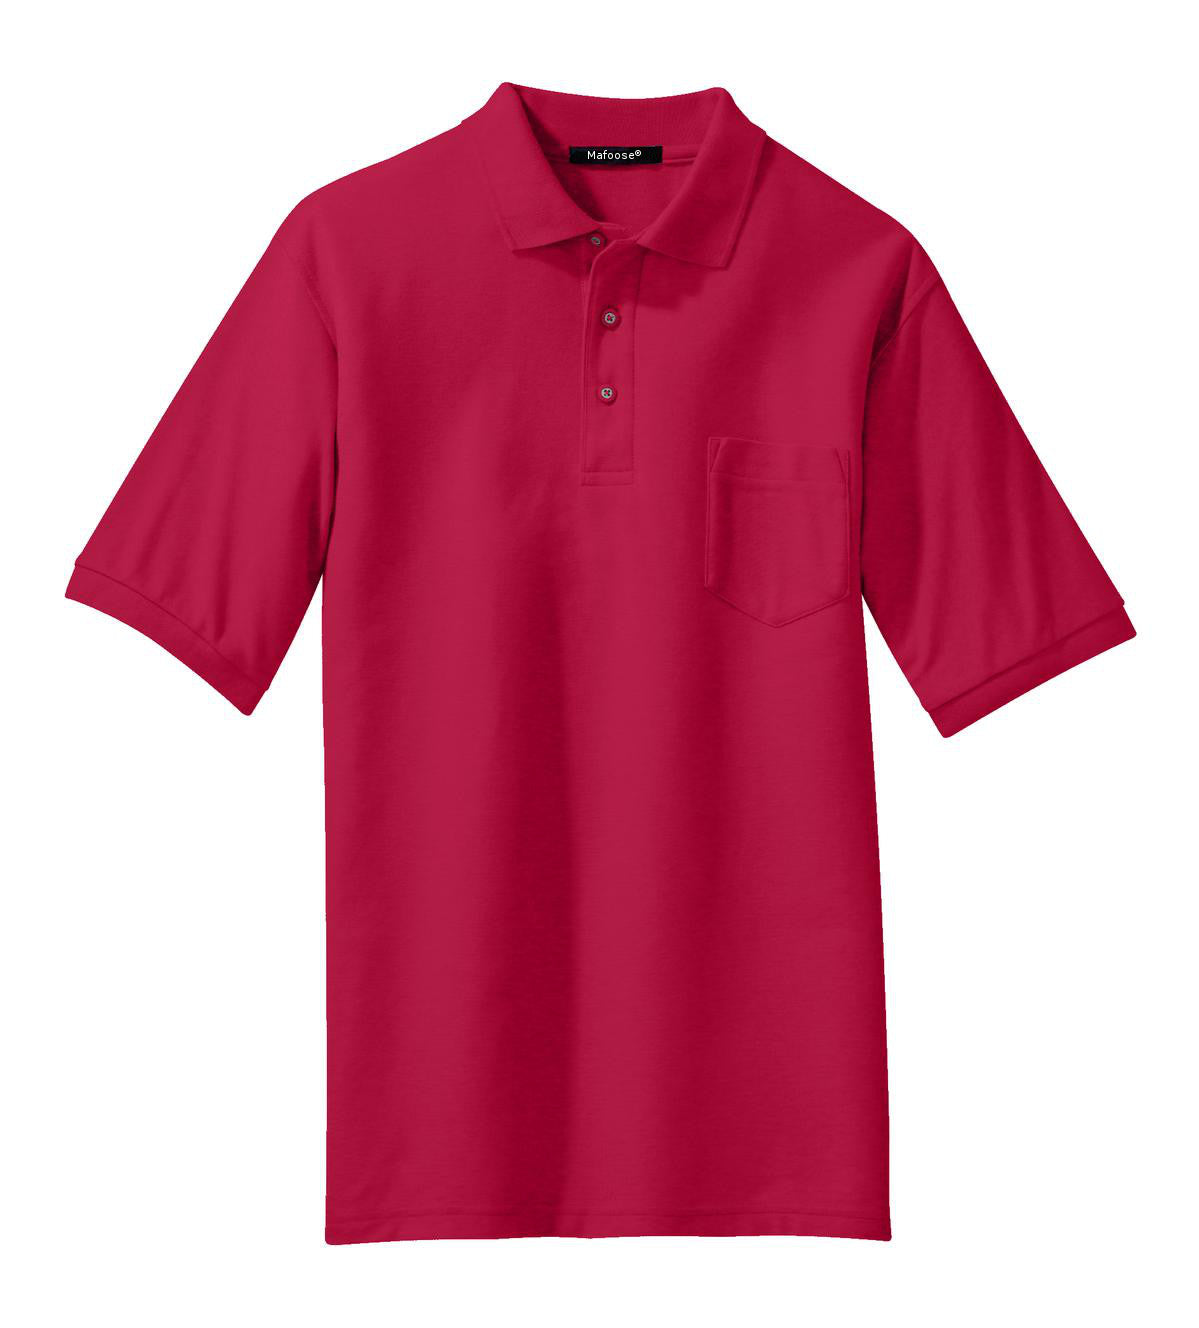 Mafoose Men's Silk Touch Polo with Pocket Red-Front